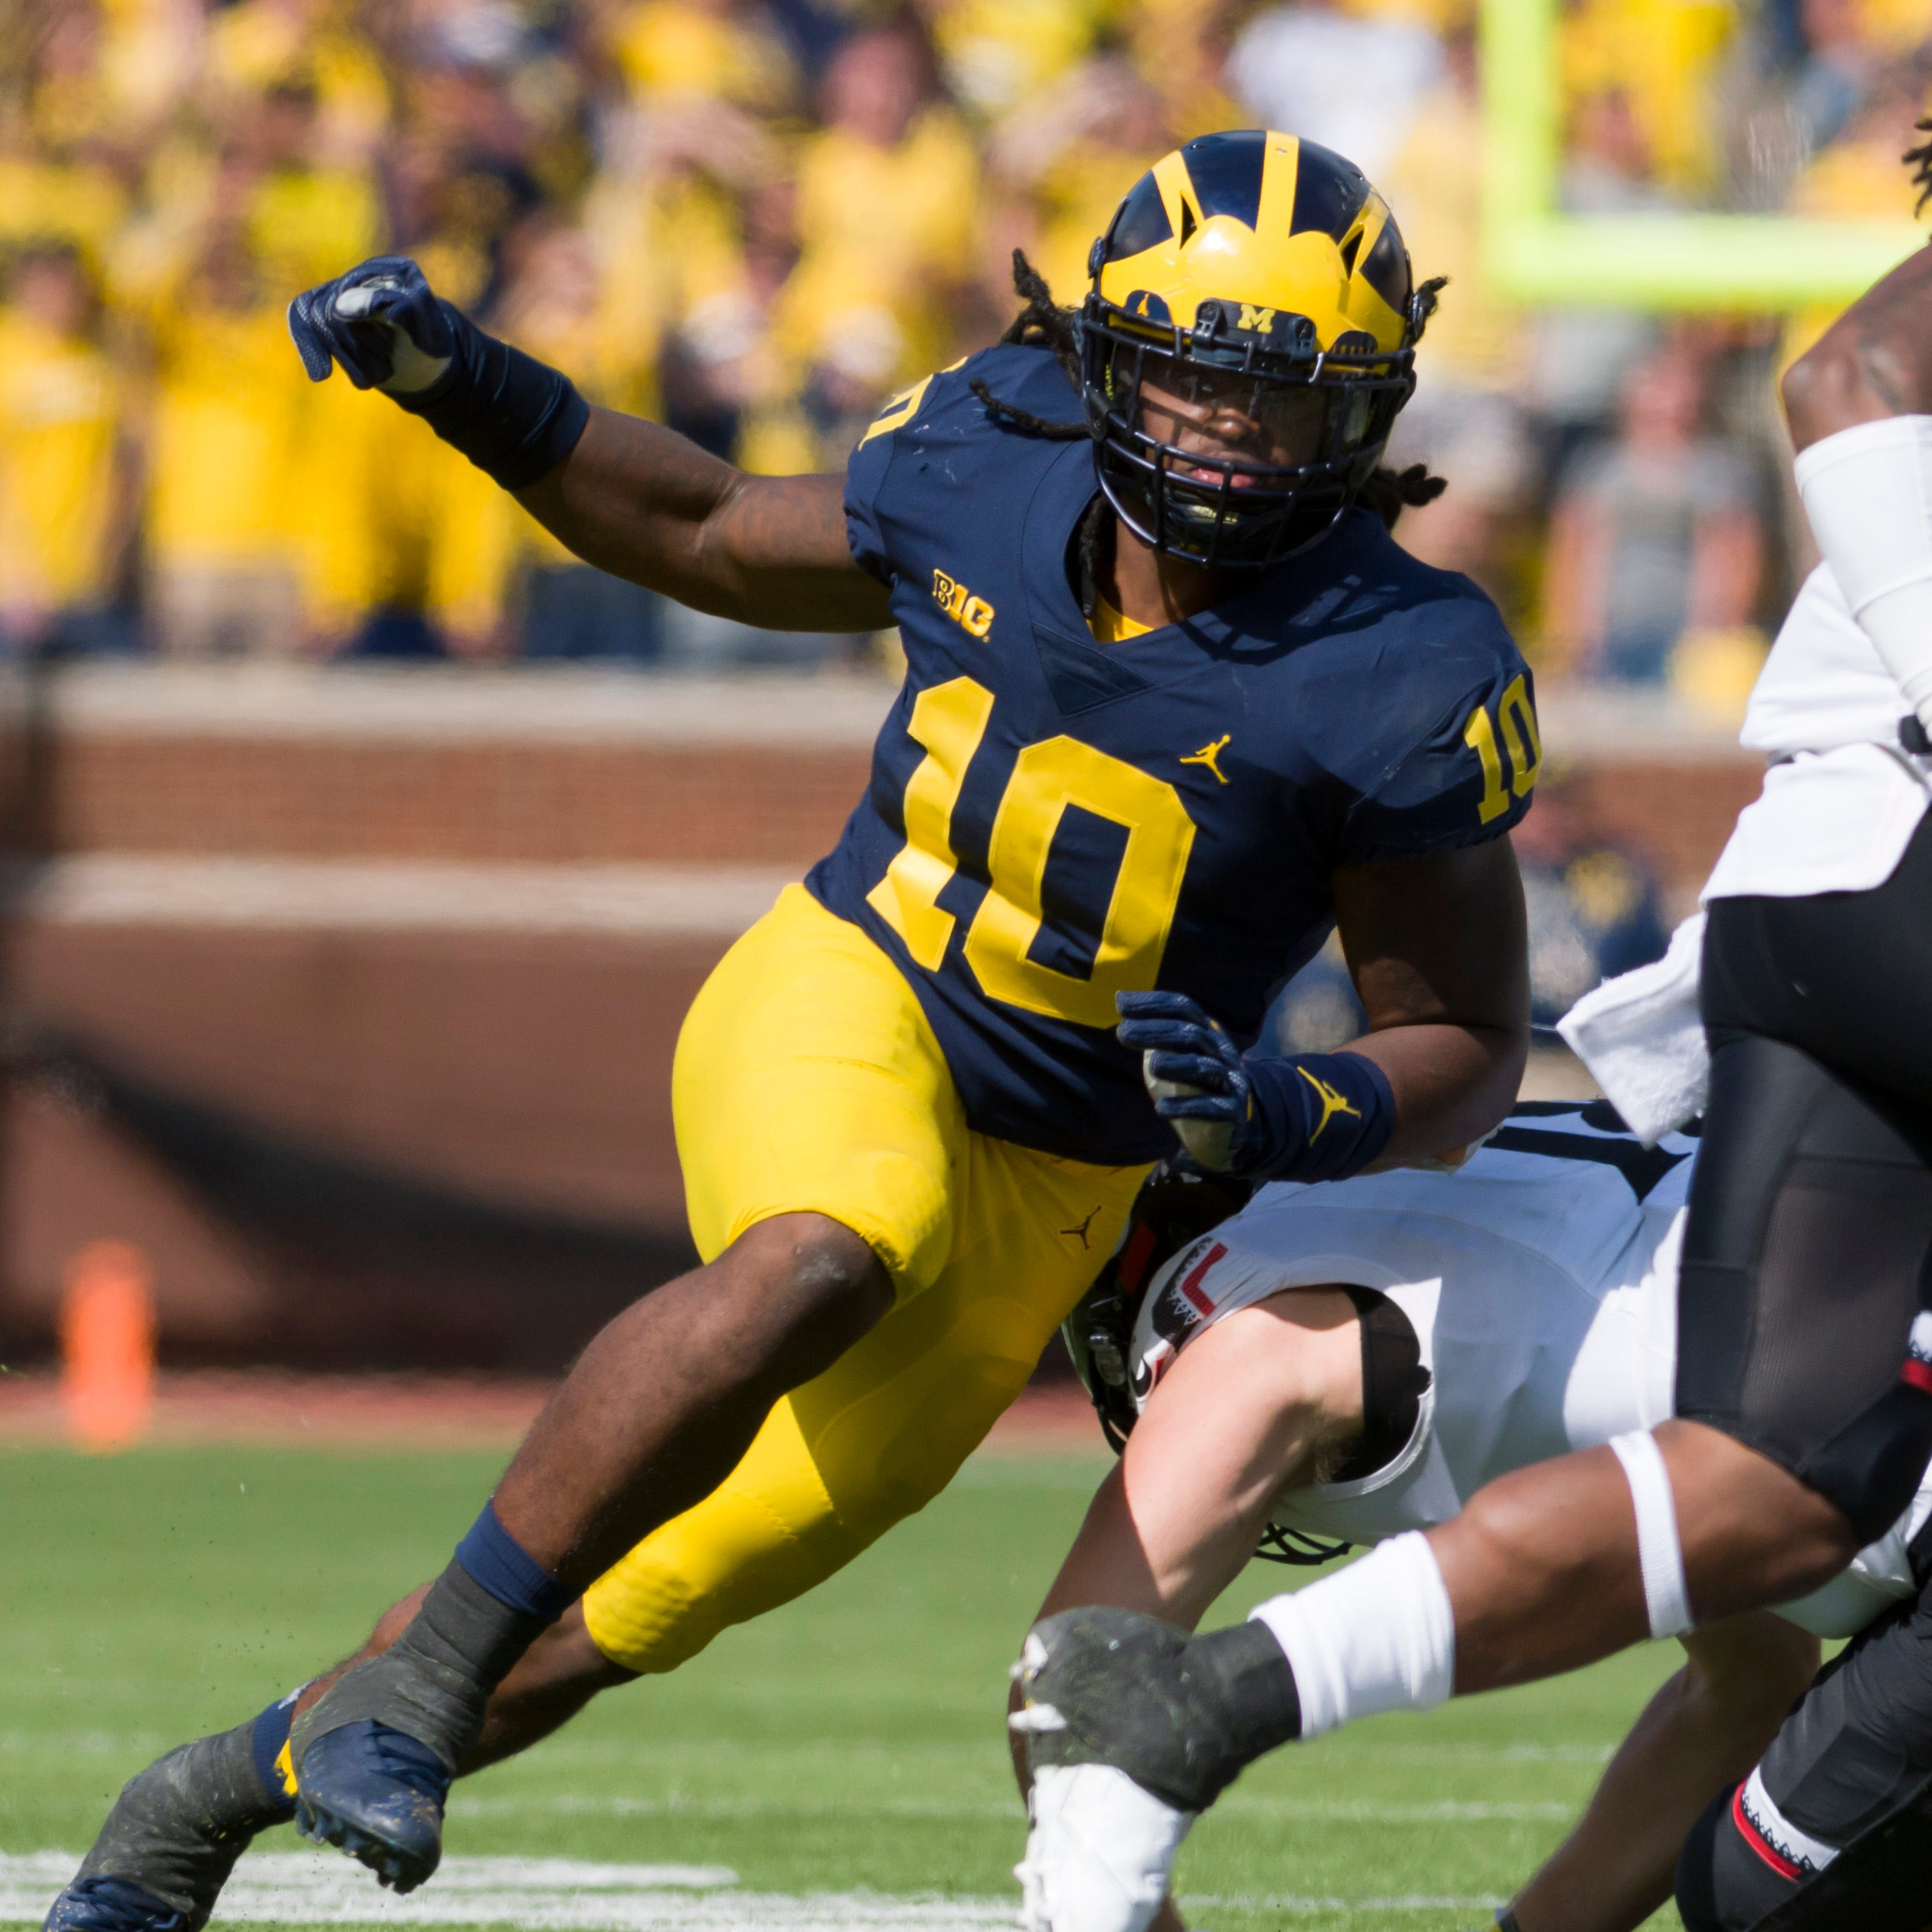 UM's Bush, Gary named to AP Preseason All-America team